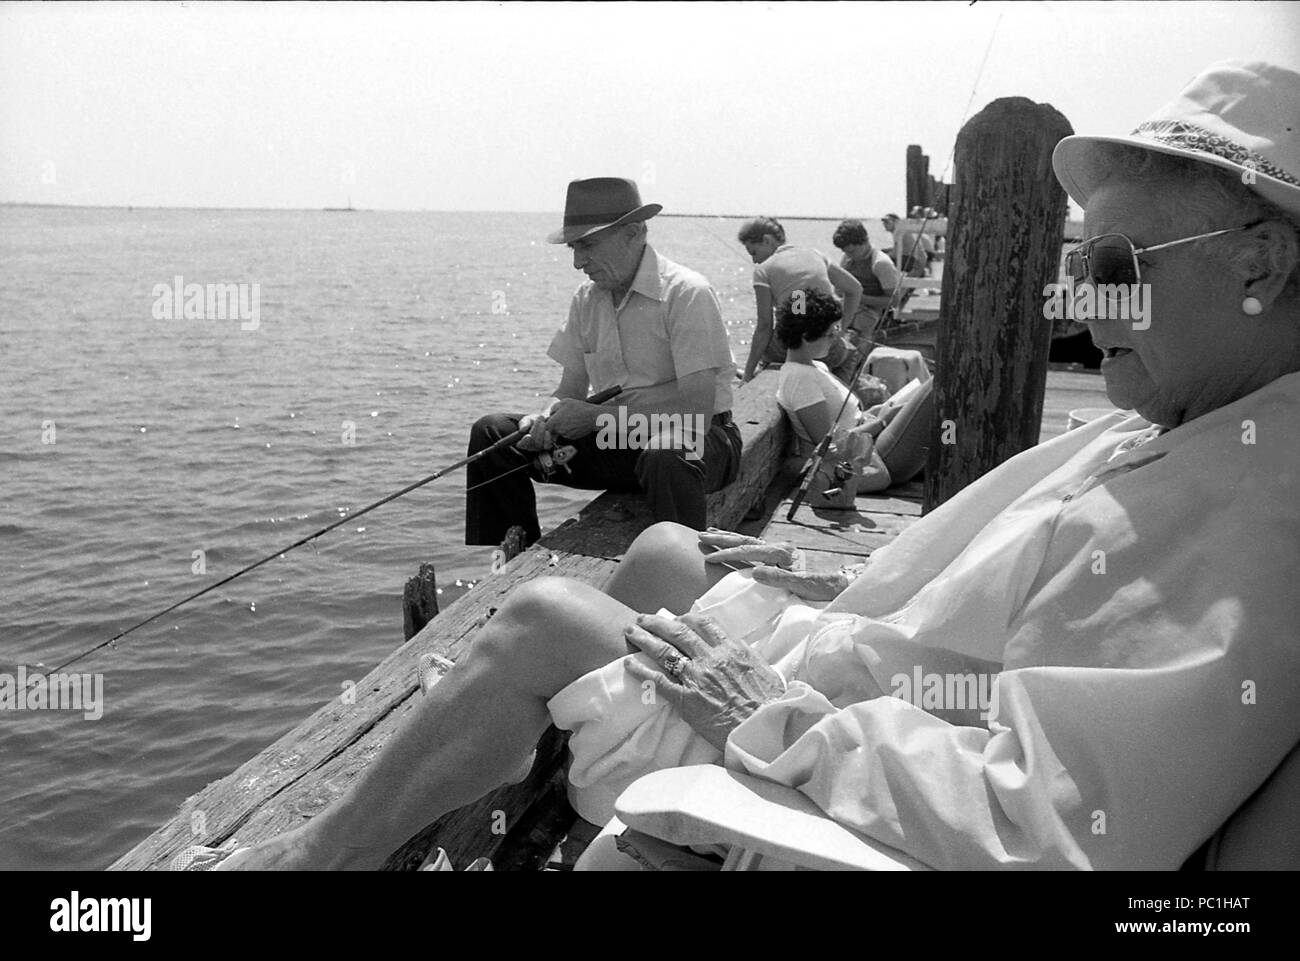 People relaxing and fishing on pier in Bridgeport, CT, 1982 Stock Photo